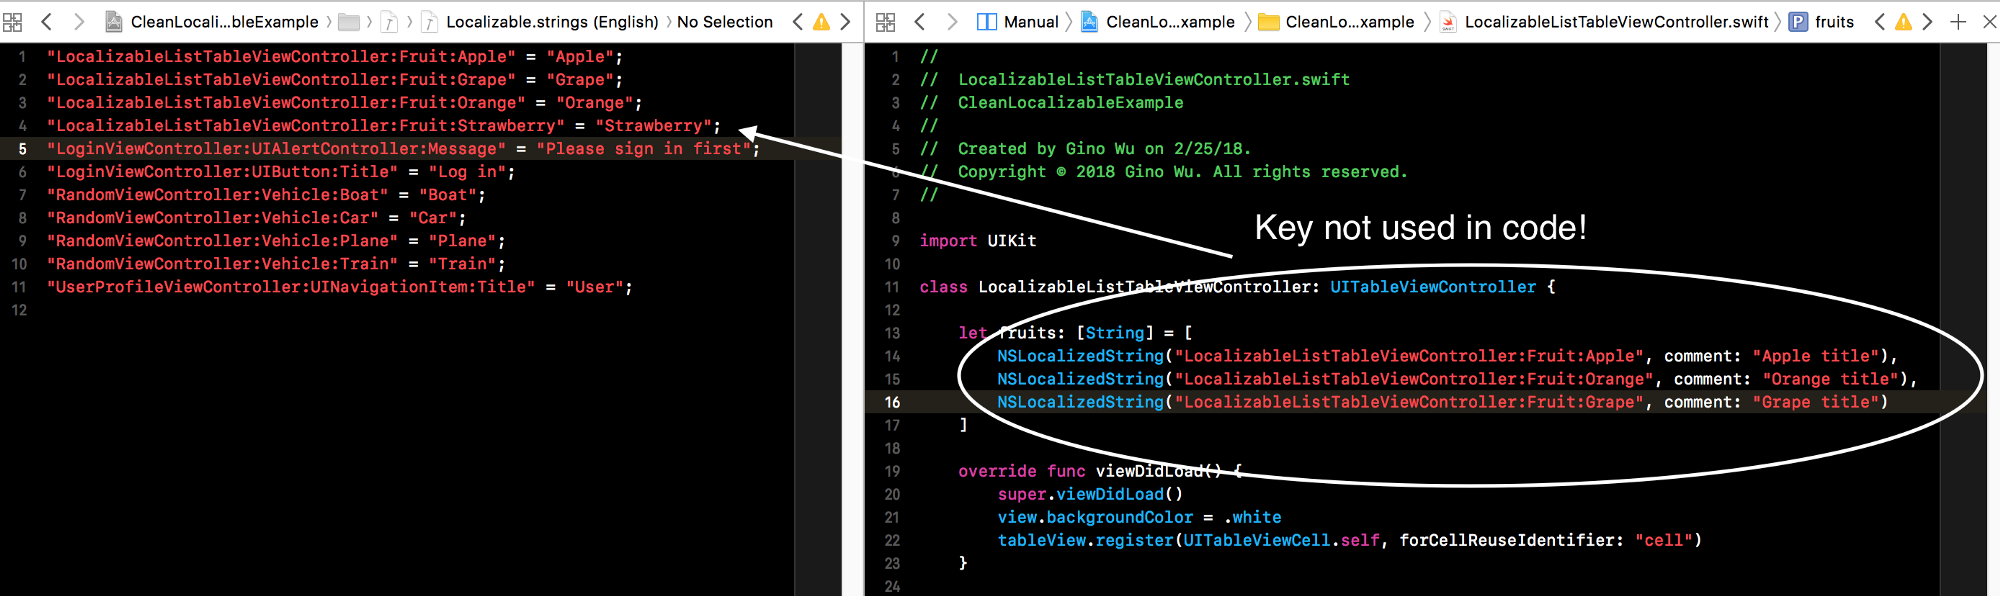 Clean iOS Localizable Files - Building VTS